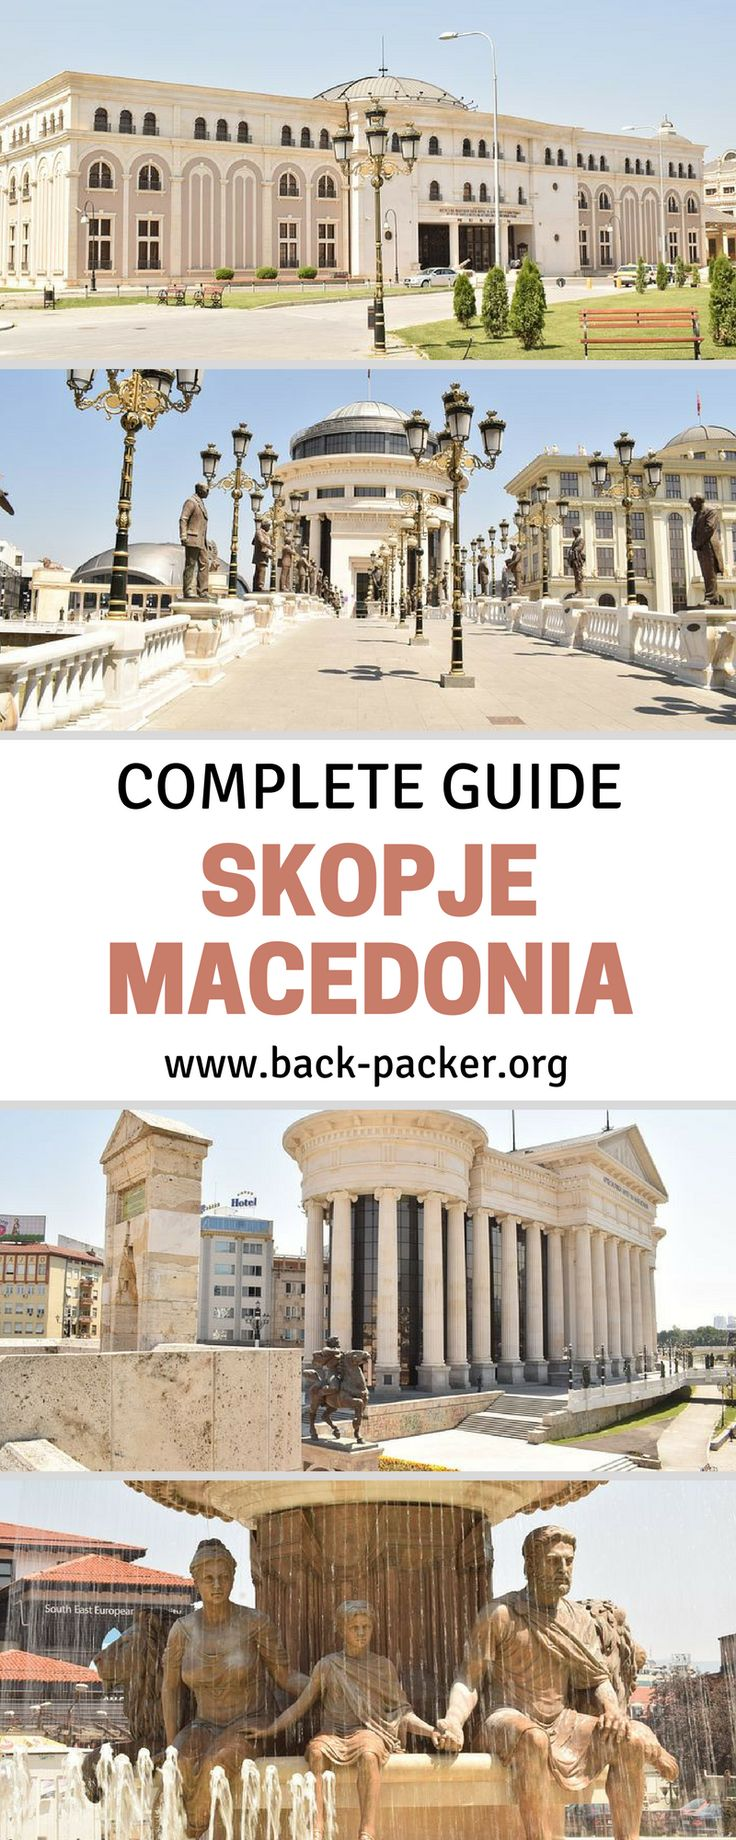 10 of the best things to do and see in Skopje, the capital city of Macedonia. Skopje is the perfect starting point for travel in Macedonia and also fits perfectly into a larger Eastern Europe road trip as a stop between Sofia, Tirana and Kosovo. | Back-packer.org #Skopje #Macedonia